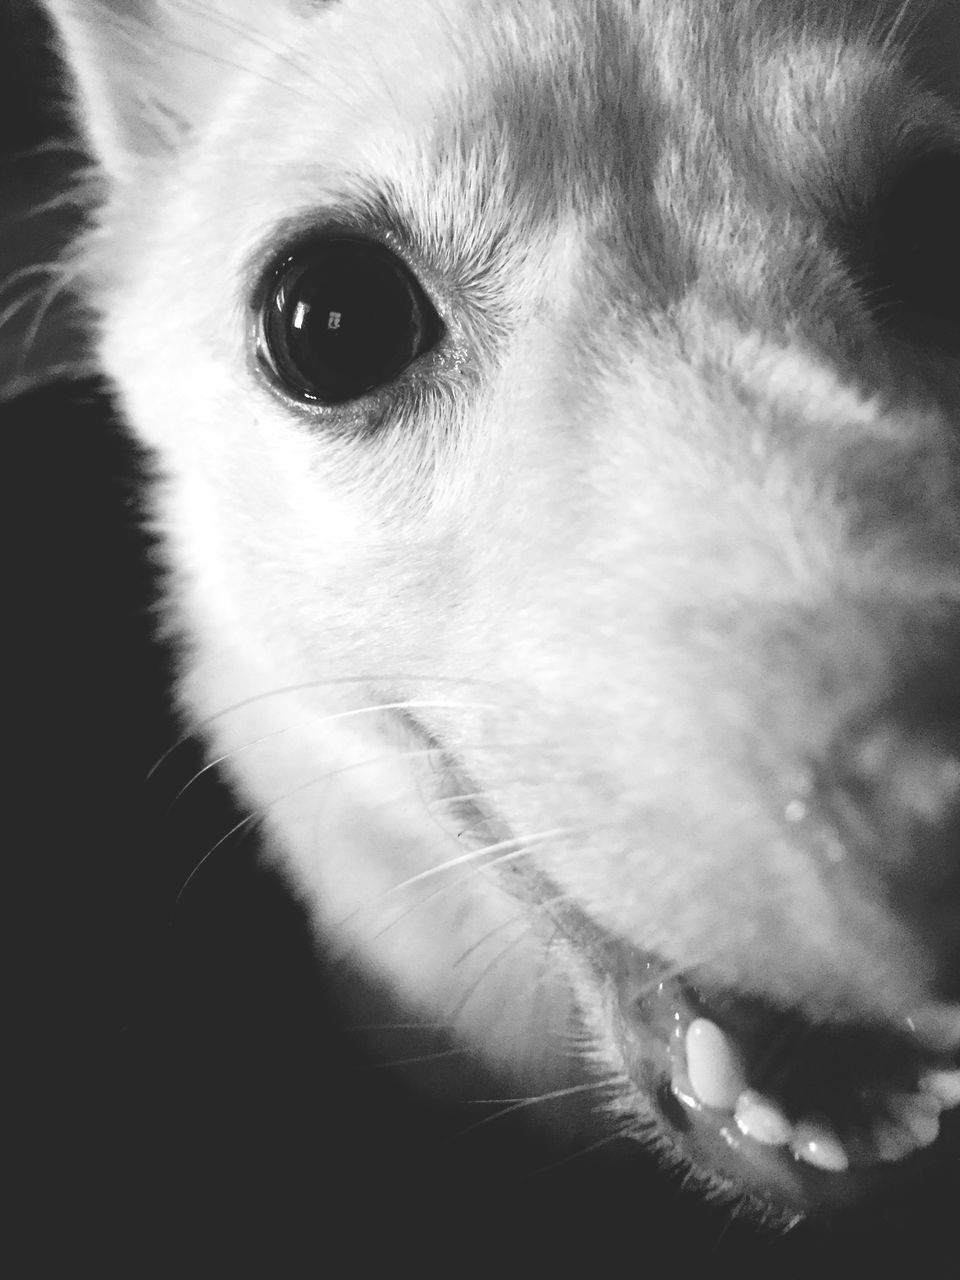 pets, one animal, dog, domestic animals, animal themes, animal head, close-up, mammal, no people, indoors, animal nose, portrait, day